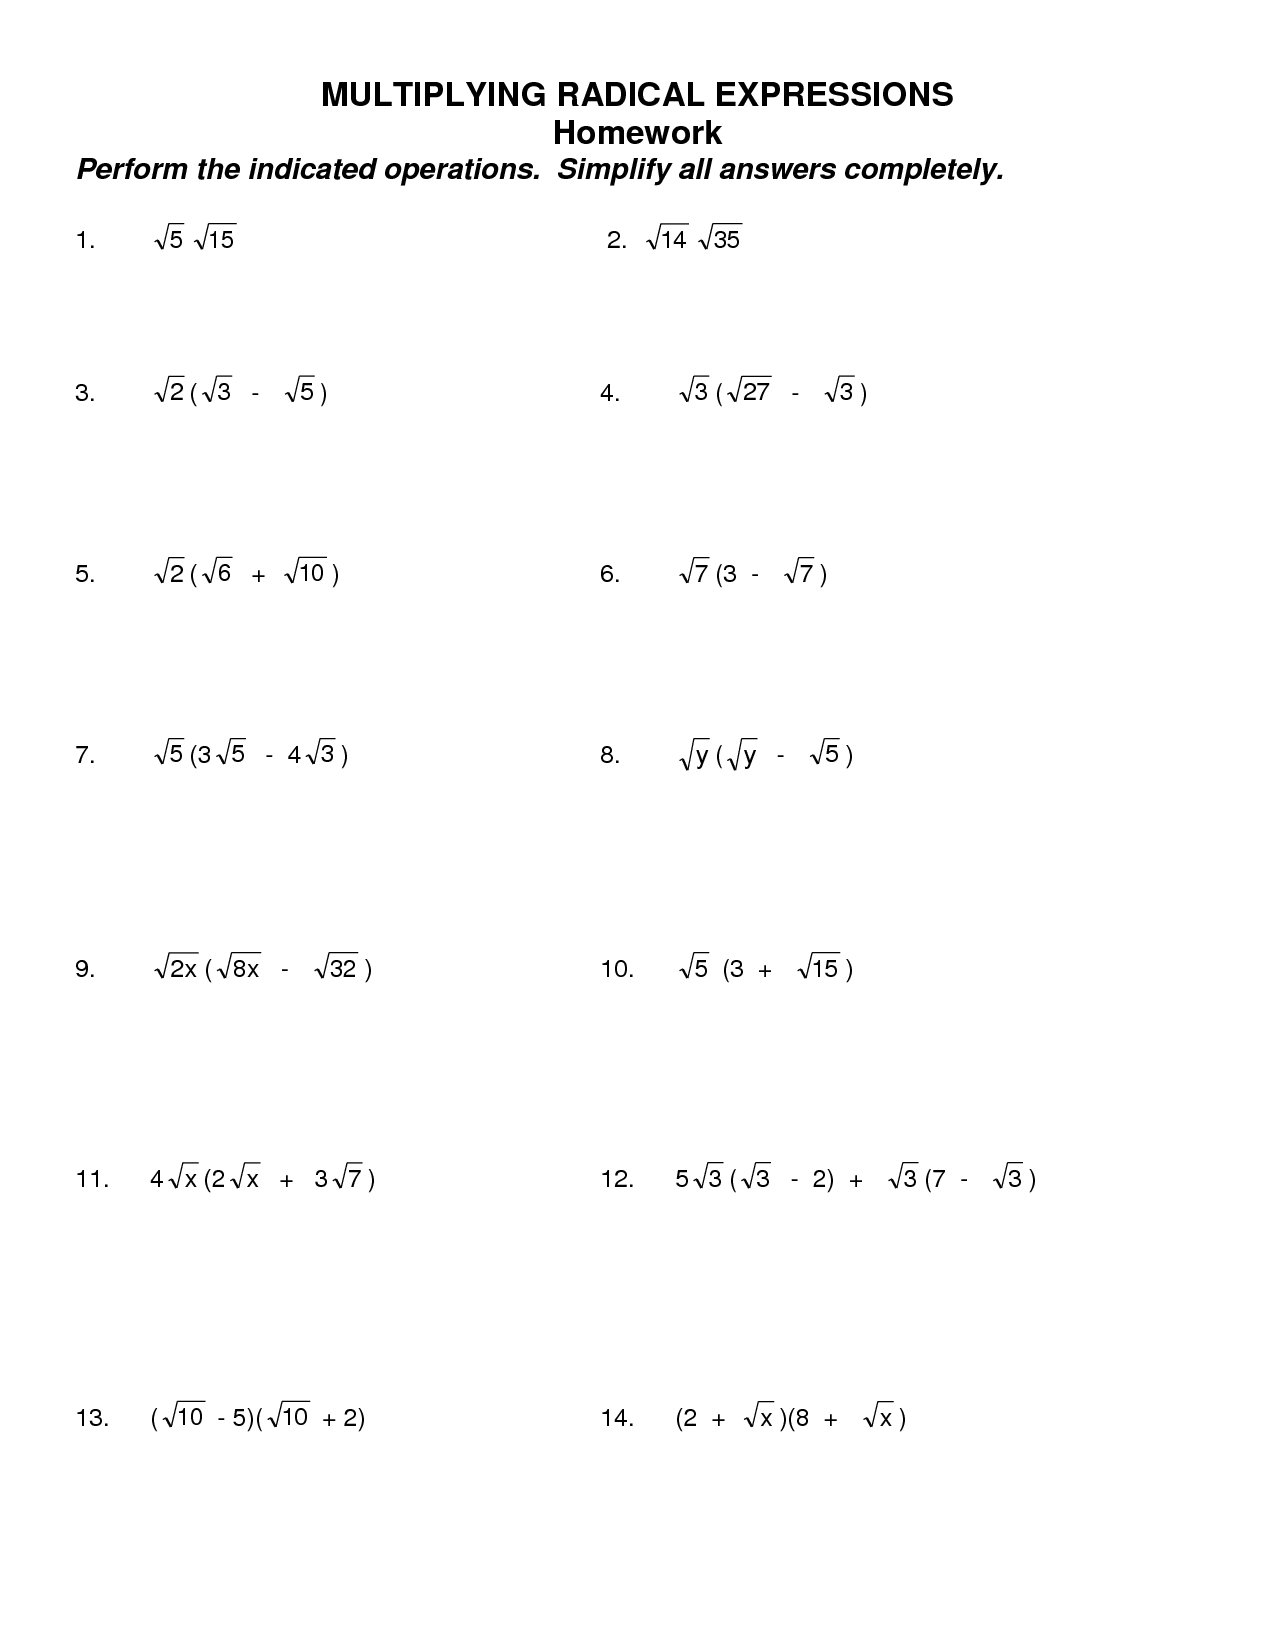 19 Best Images Of Simplifying Radicals Worksheet 1 Answers